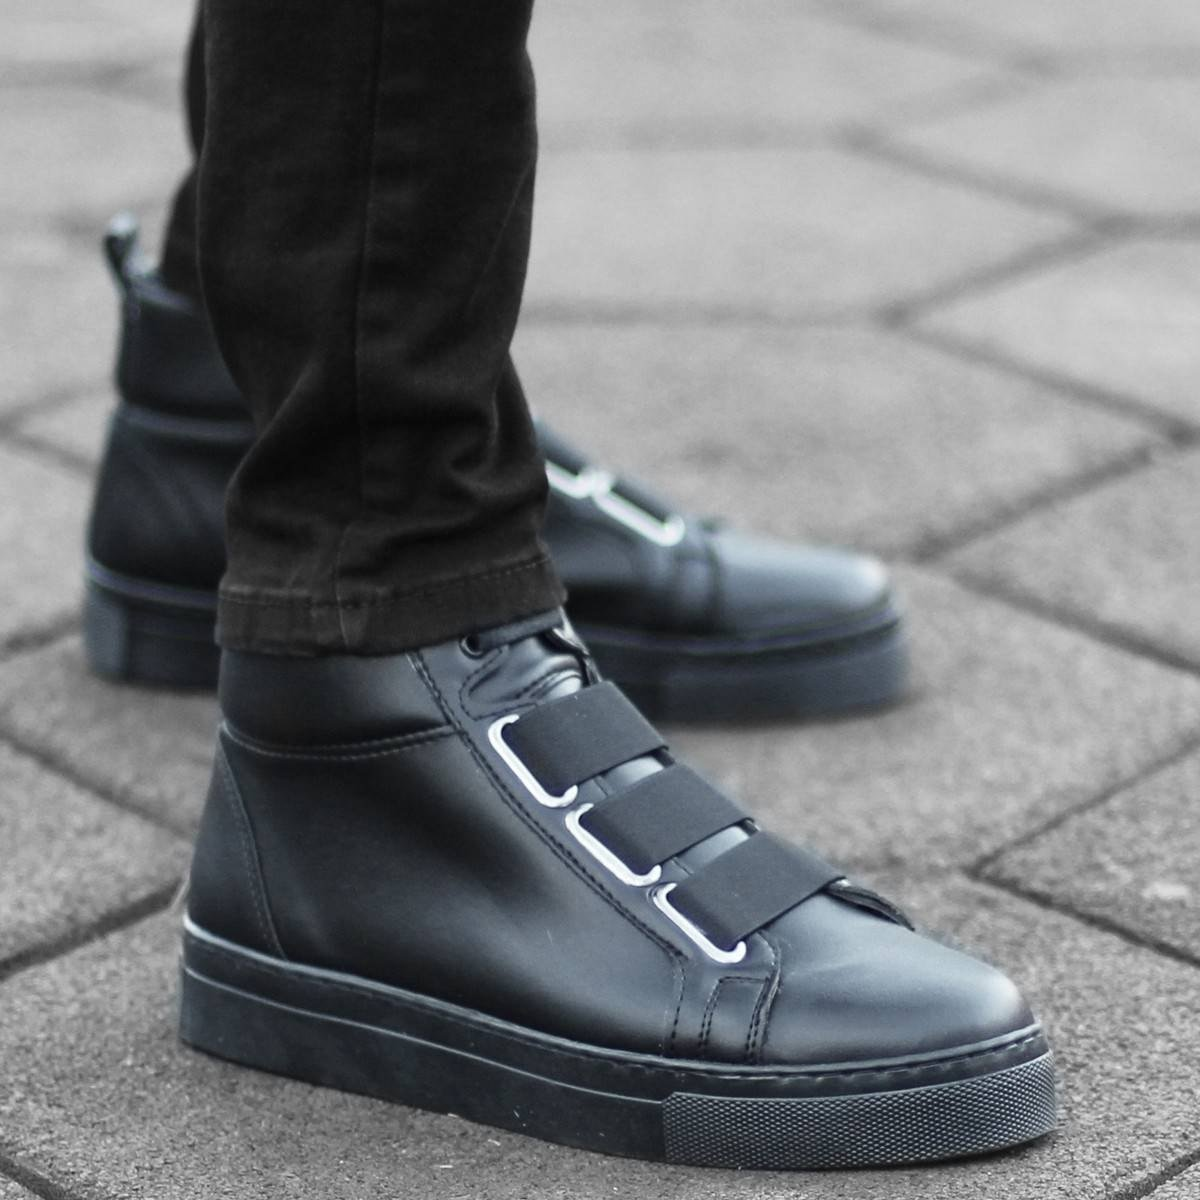 Urban Sneaker Boots in Black